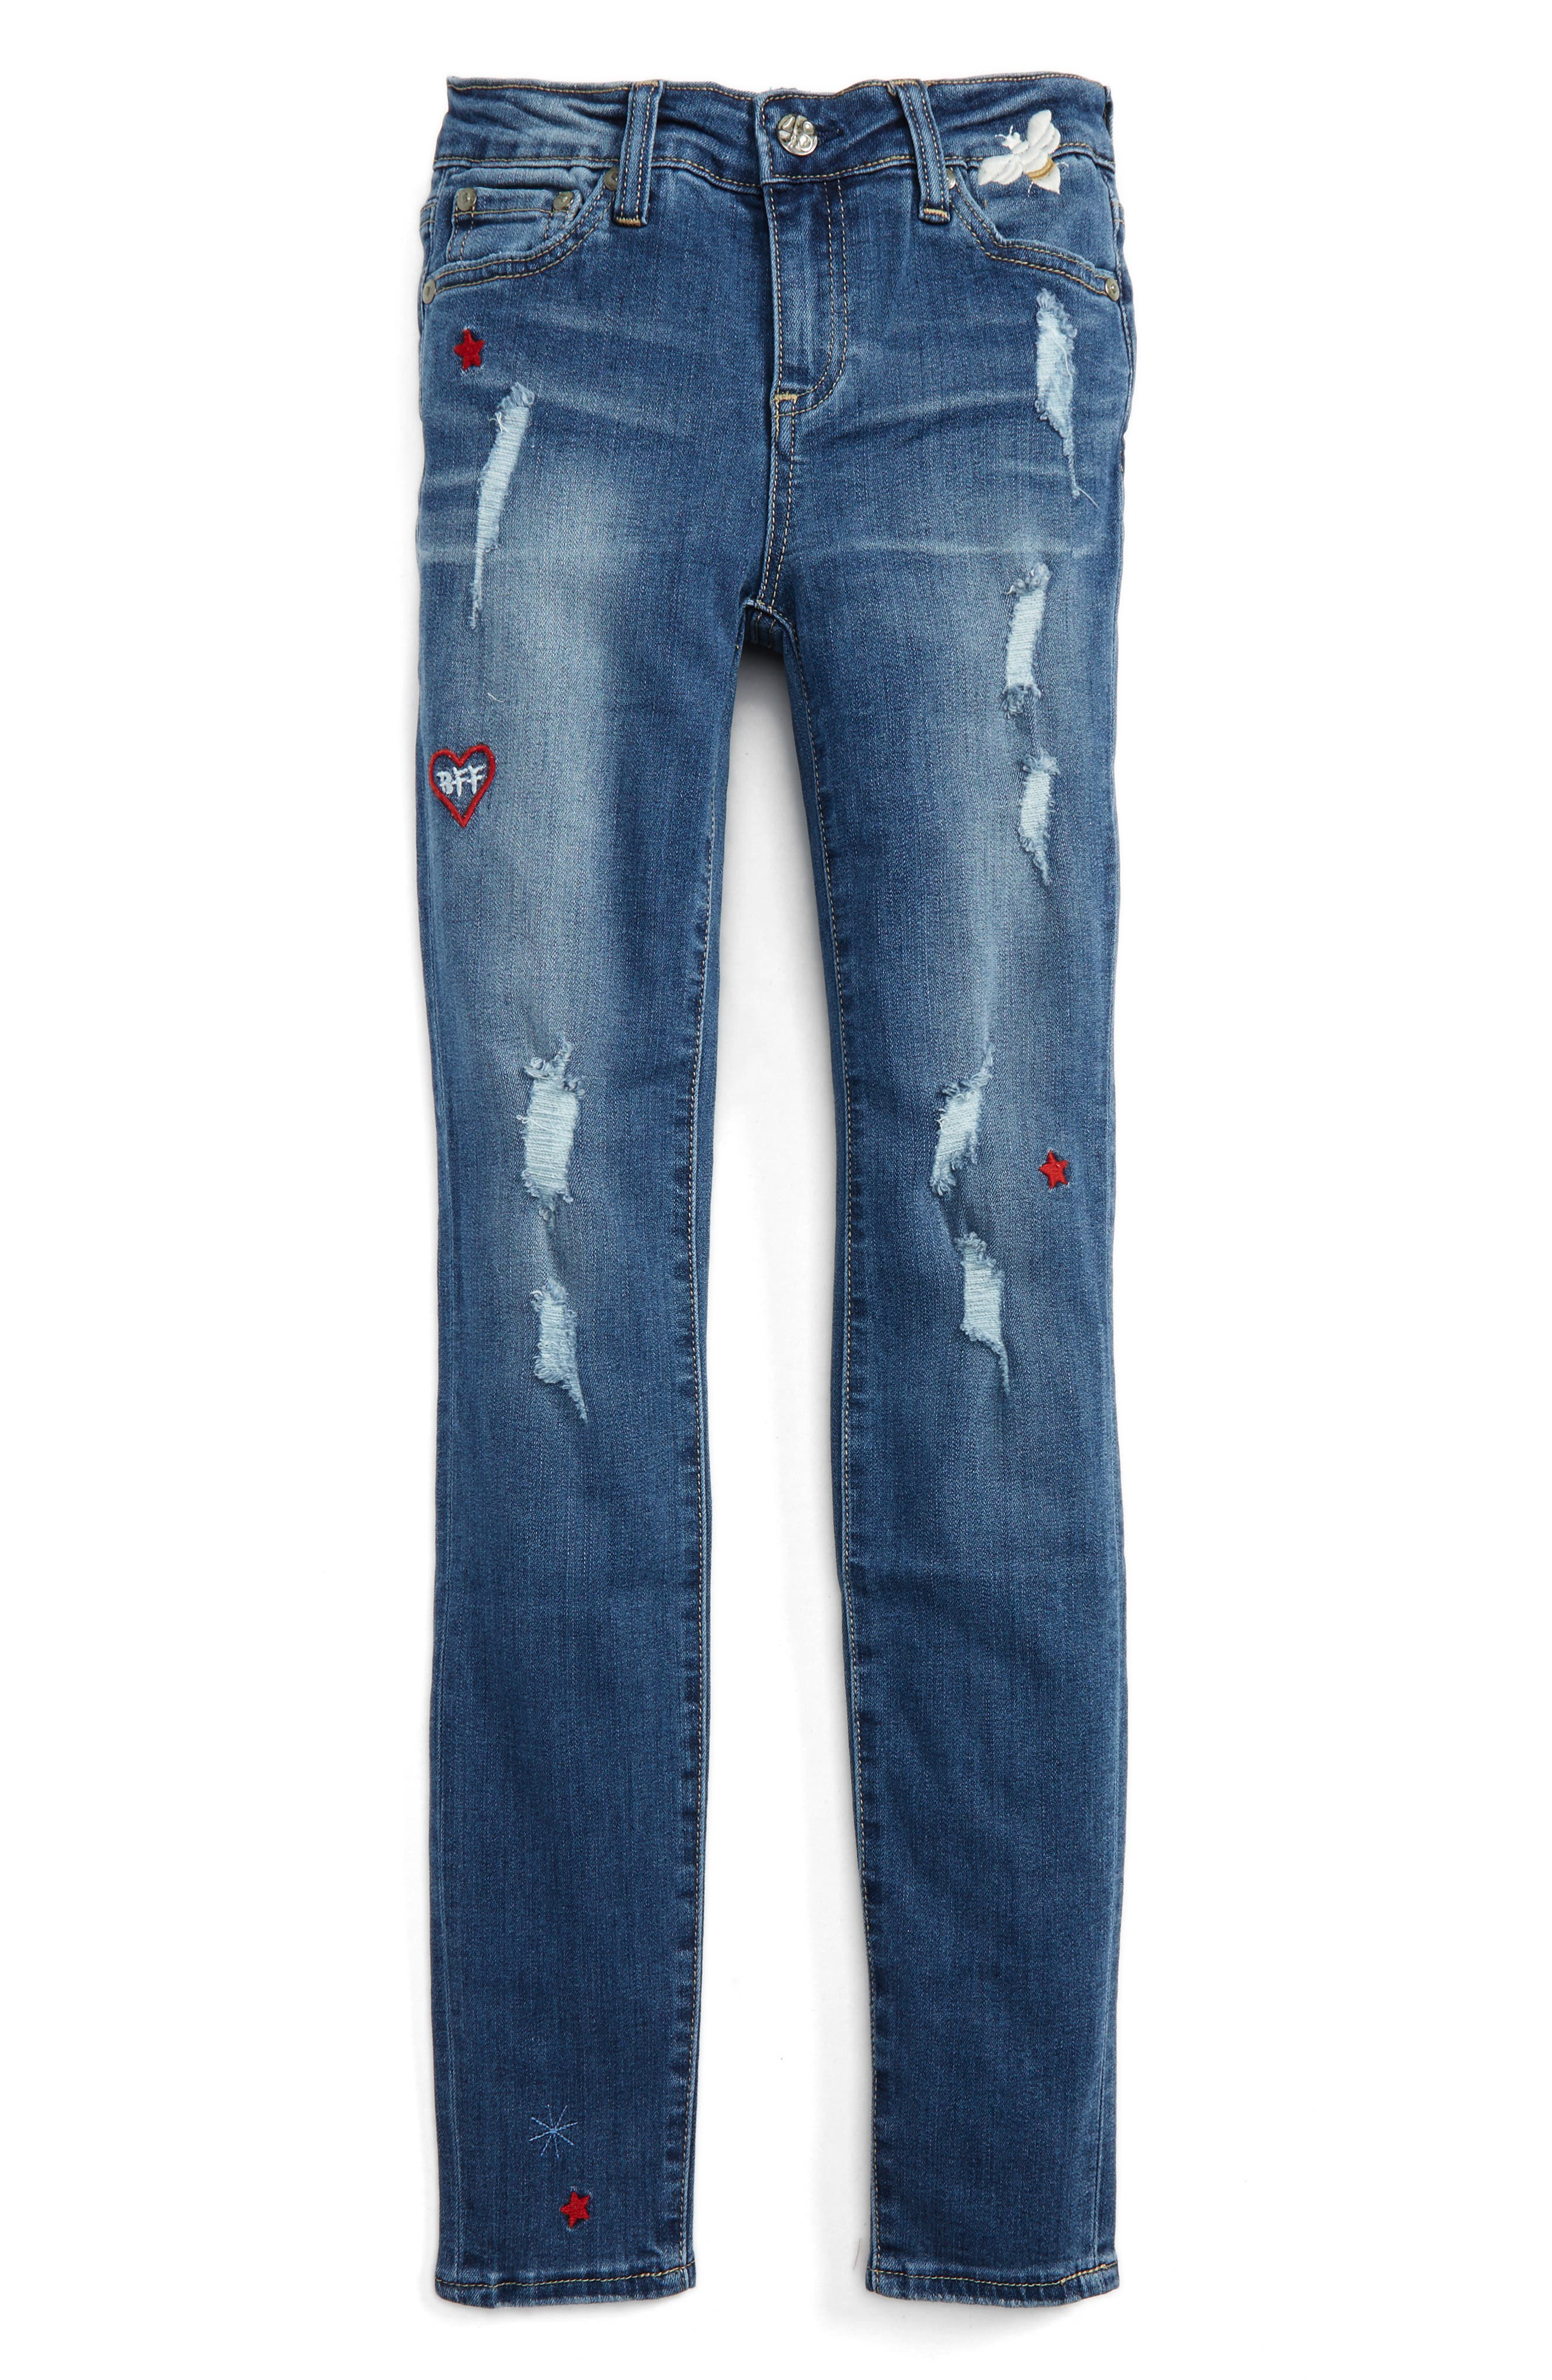 Main Image - ag adriano goldschmied kids The Ella Super Skinny Jeans (Big Girls)